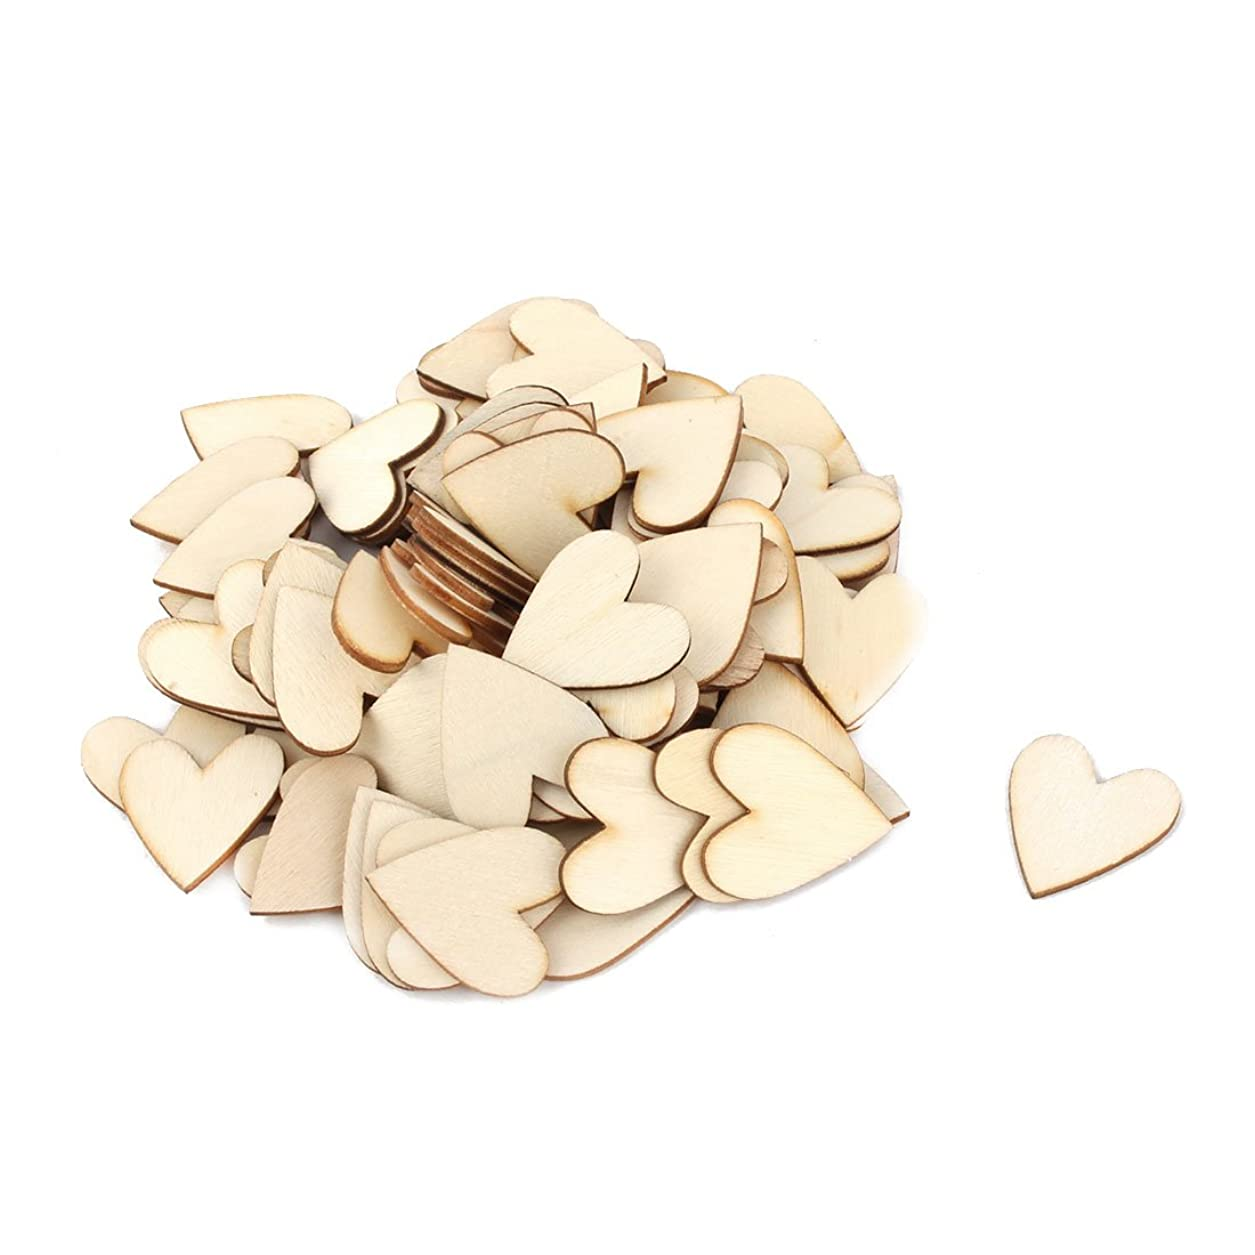 uxcell 100 Pcs Rustic Wooden Love Heart Wedding Table Scatter Decor DIY Crafts Slices 1